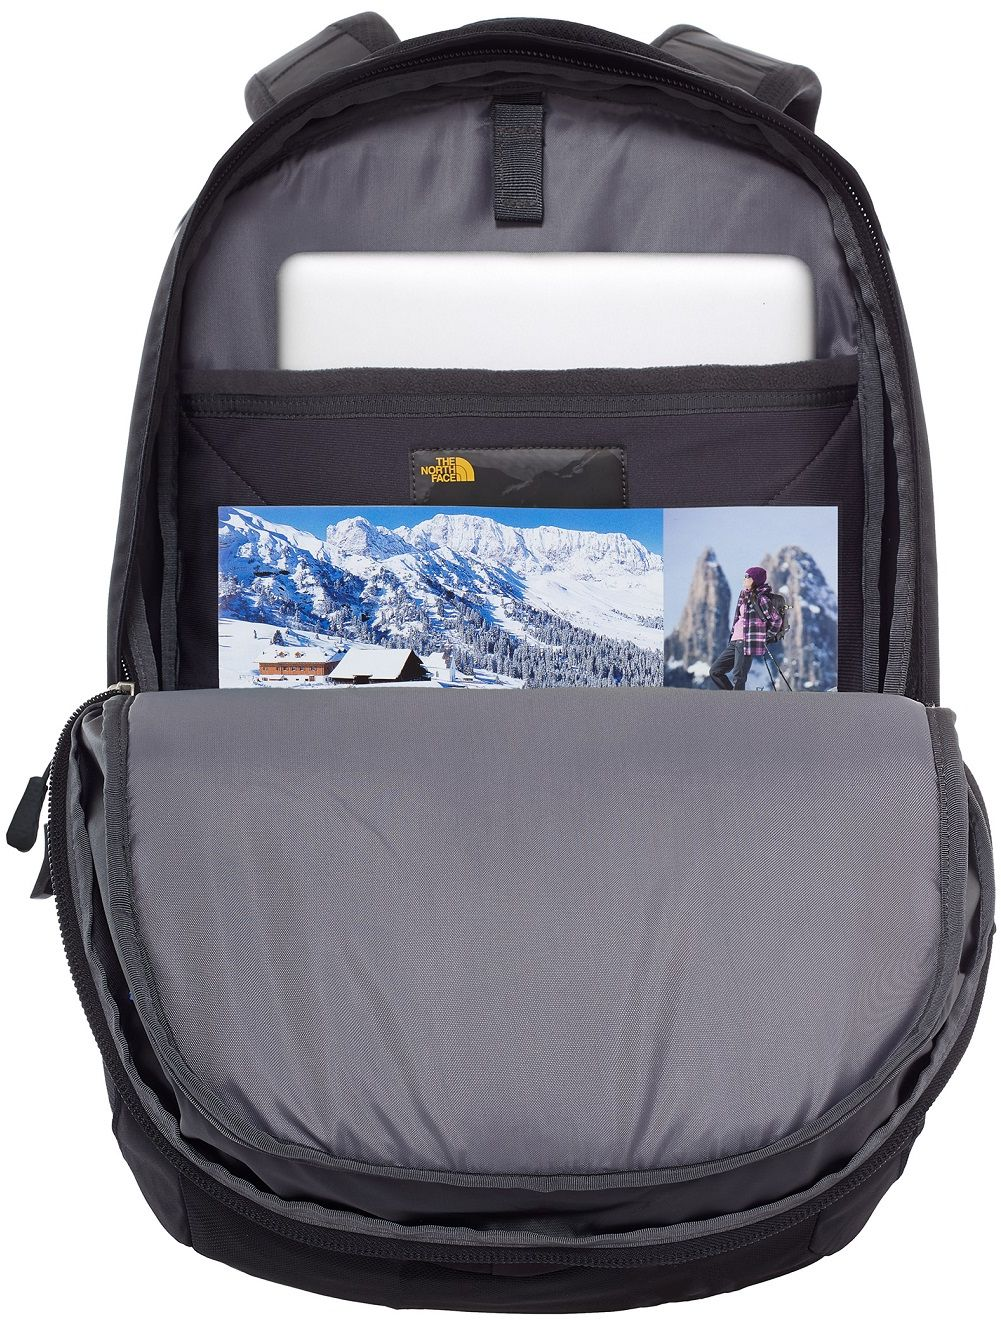 The-North-Face-Tnf-Borealis-28-L-cartable-randonnee-Sac-a-dos-Laptopfach-NEUF miniature 5